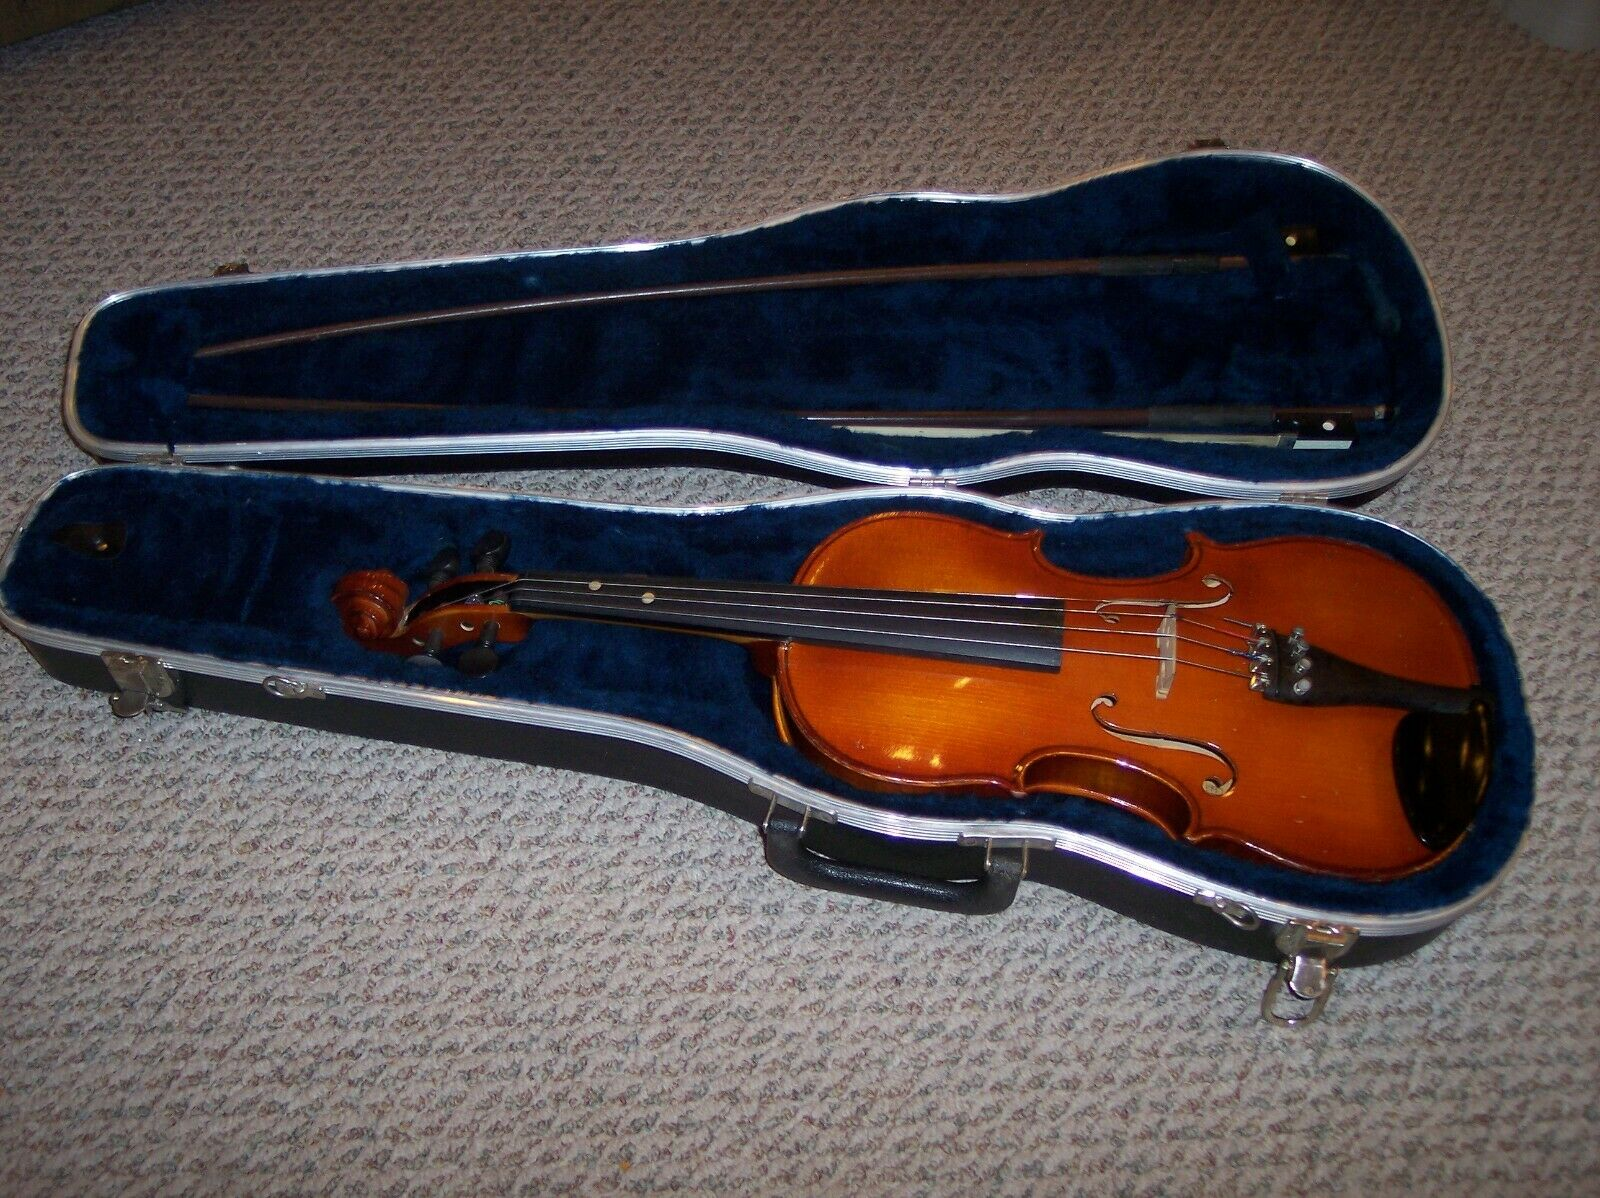 A.R. Seidel 4 4 Violin with 2 bows and hard case, V131E4, 1997